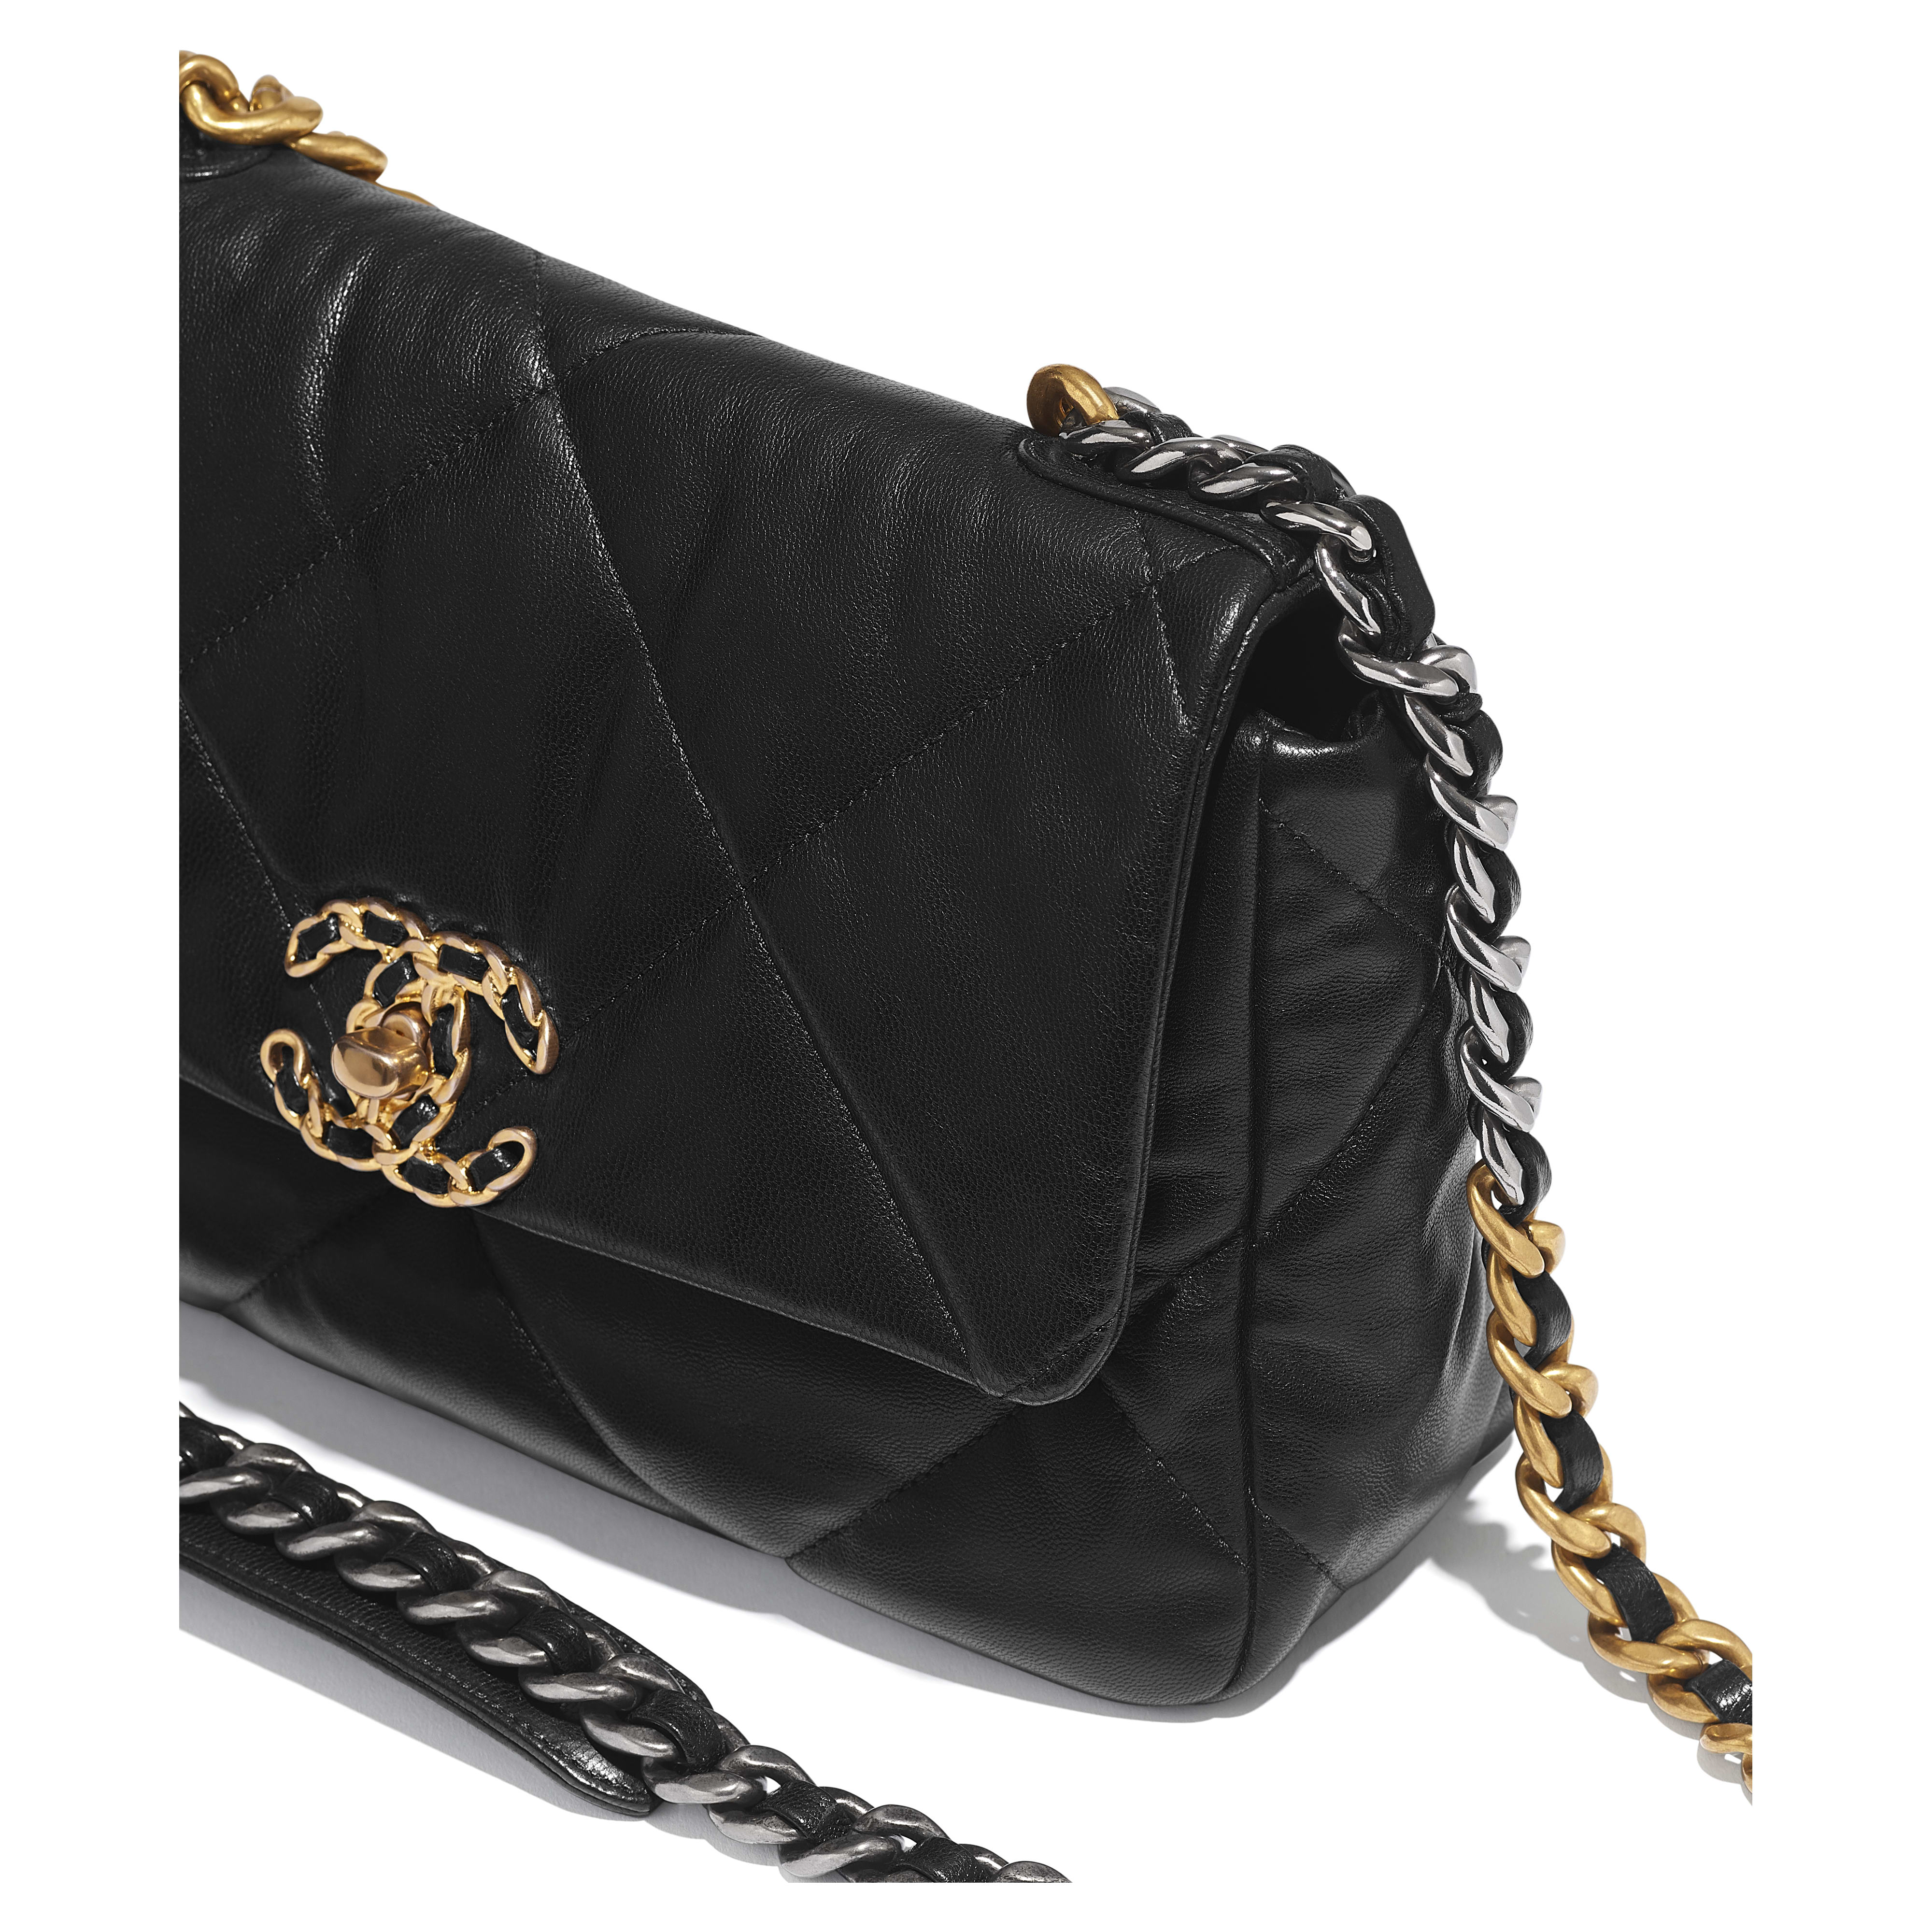 CHANEL 19 Flap Bag - Black - Goatskin, Gold-Tone, Silver-Tone & Ruthenium-Finish Metal - CHANEL - Extra view - see standard sized version